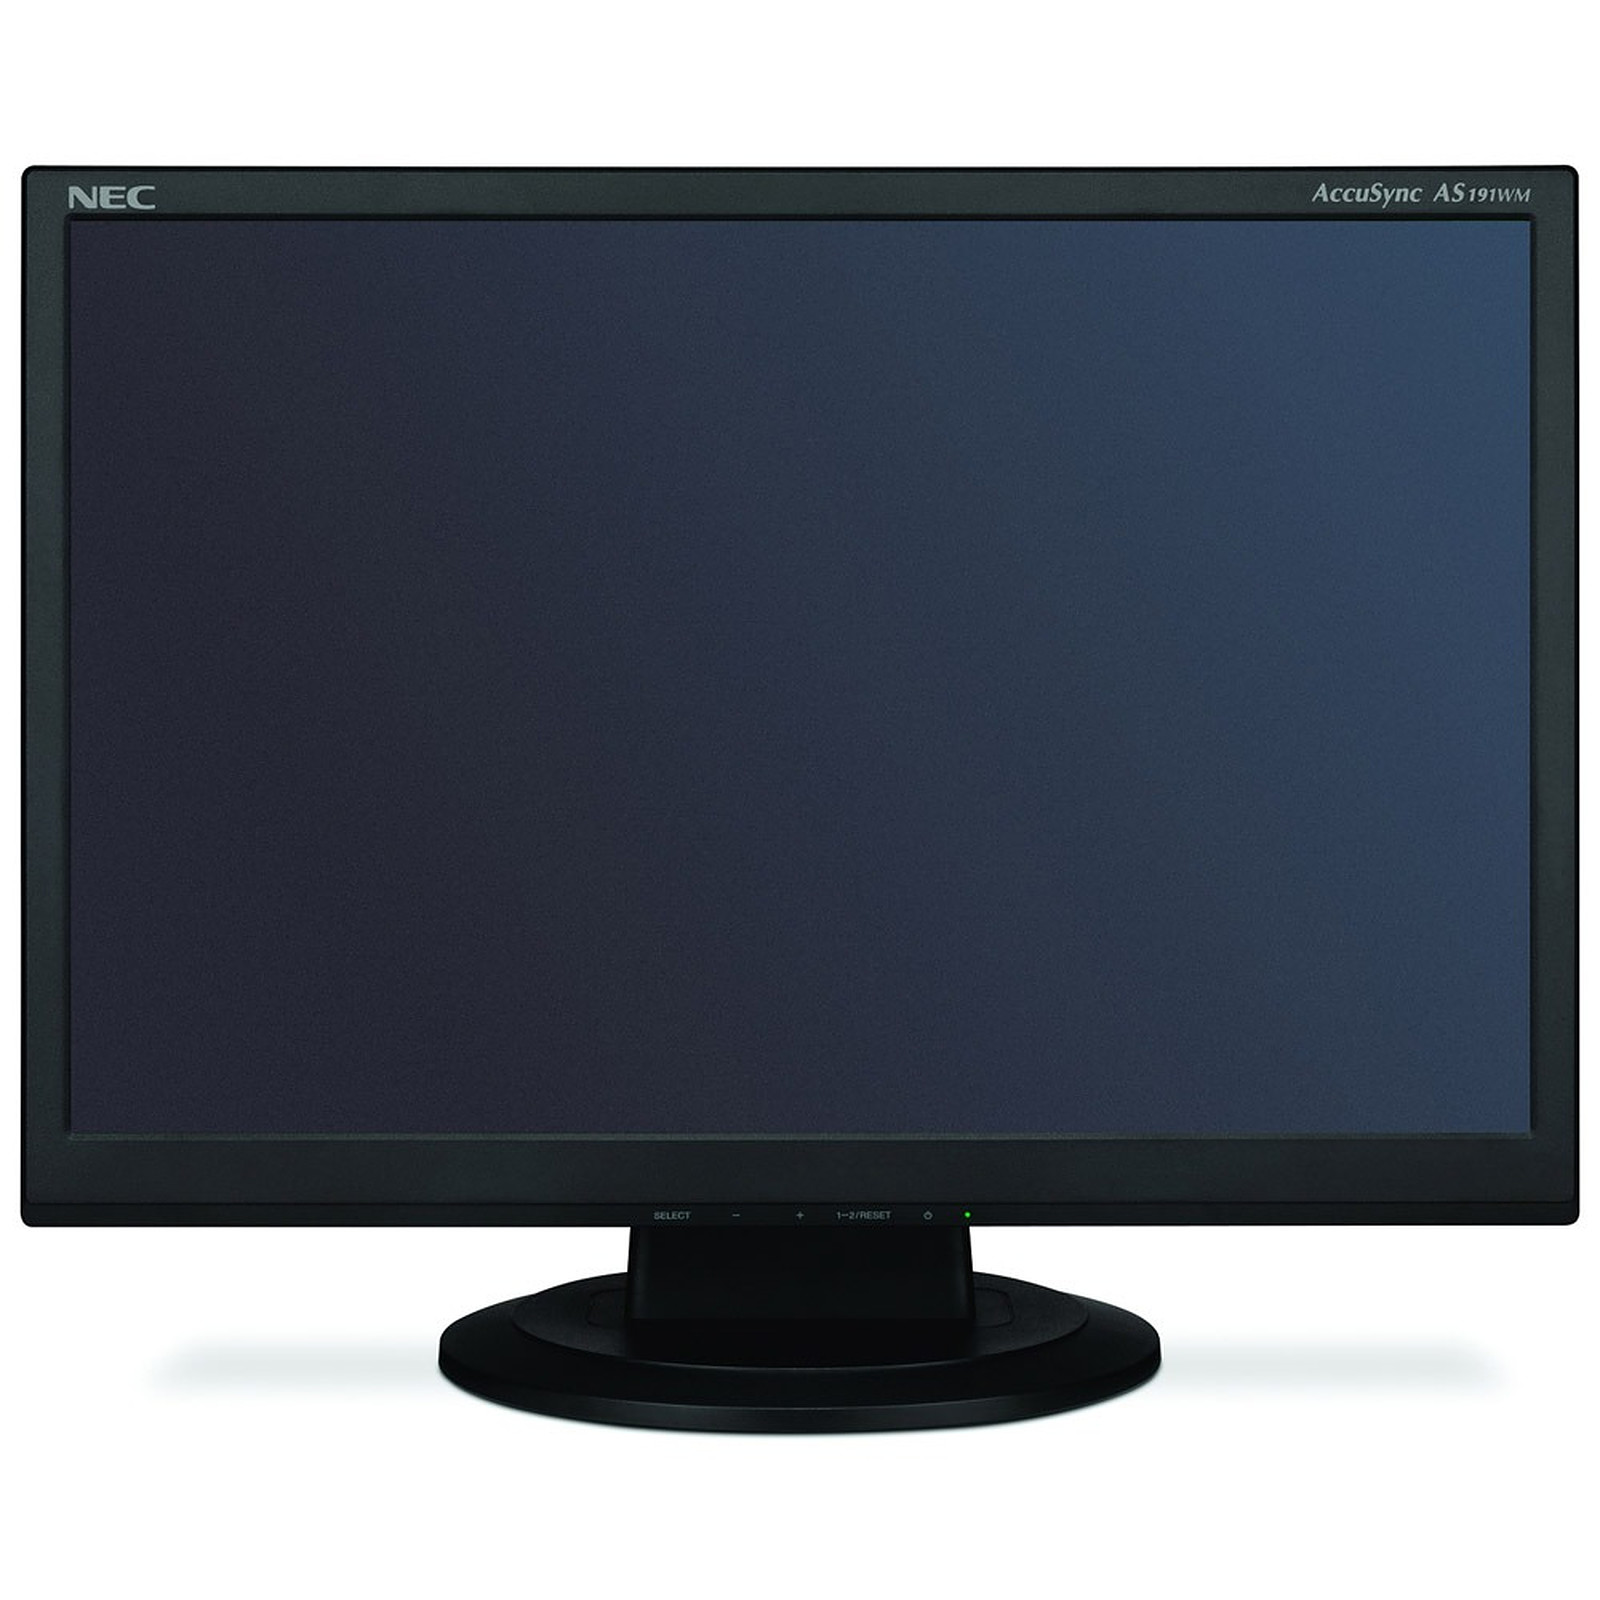 NEC AccuSync AS191WM